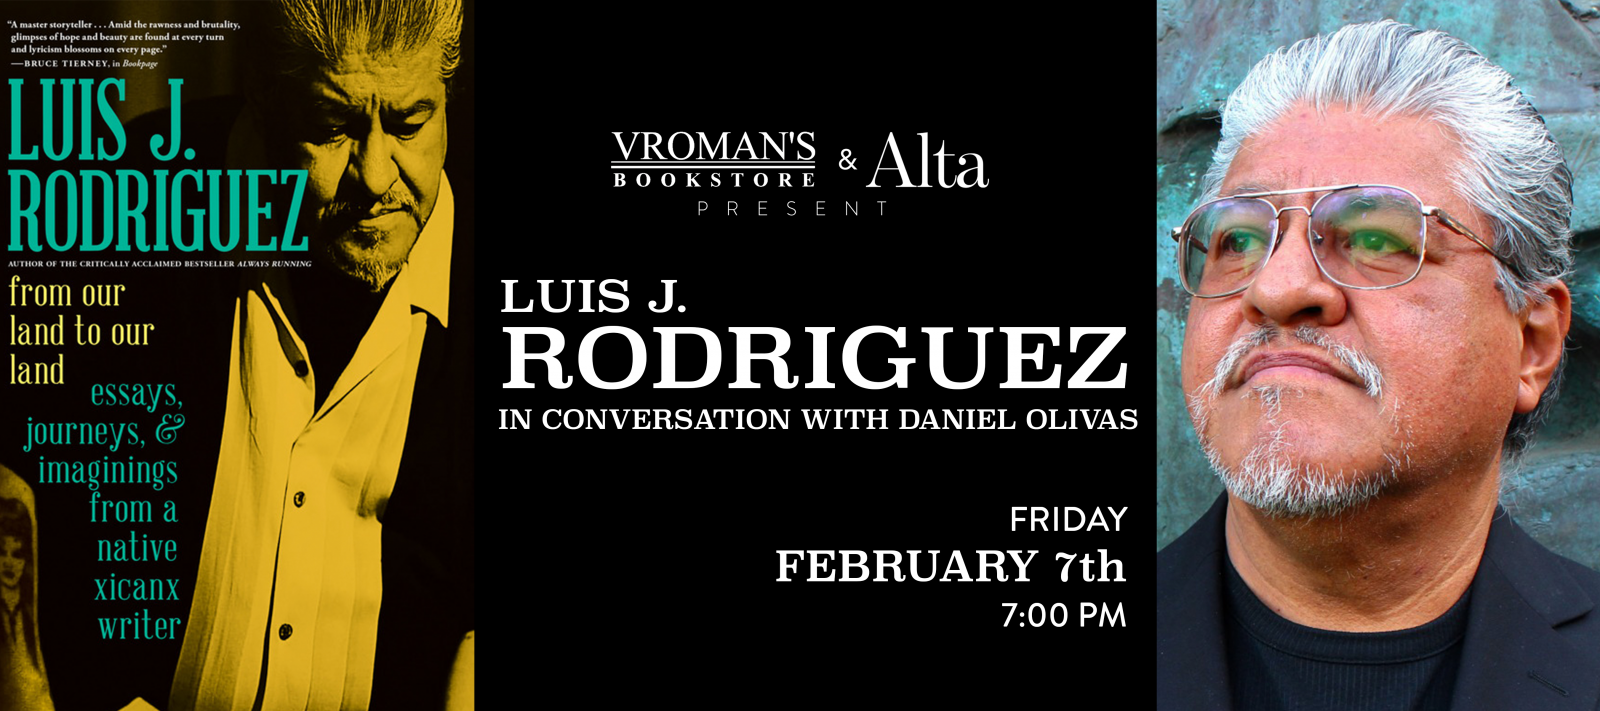 Luis J. Rodriguez, in conversation with Daniel Olivas, discusses and signs From Our Land to Our Land on Friday February 7th at 7pm